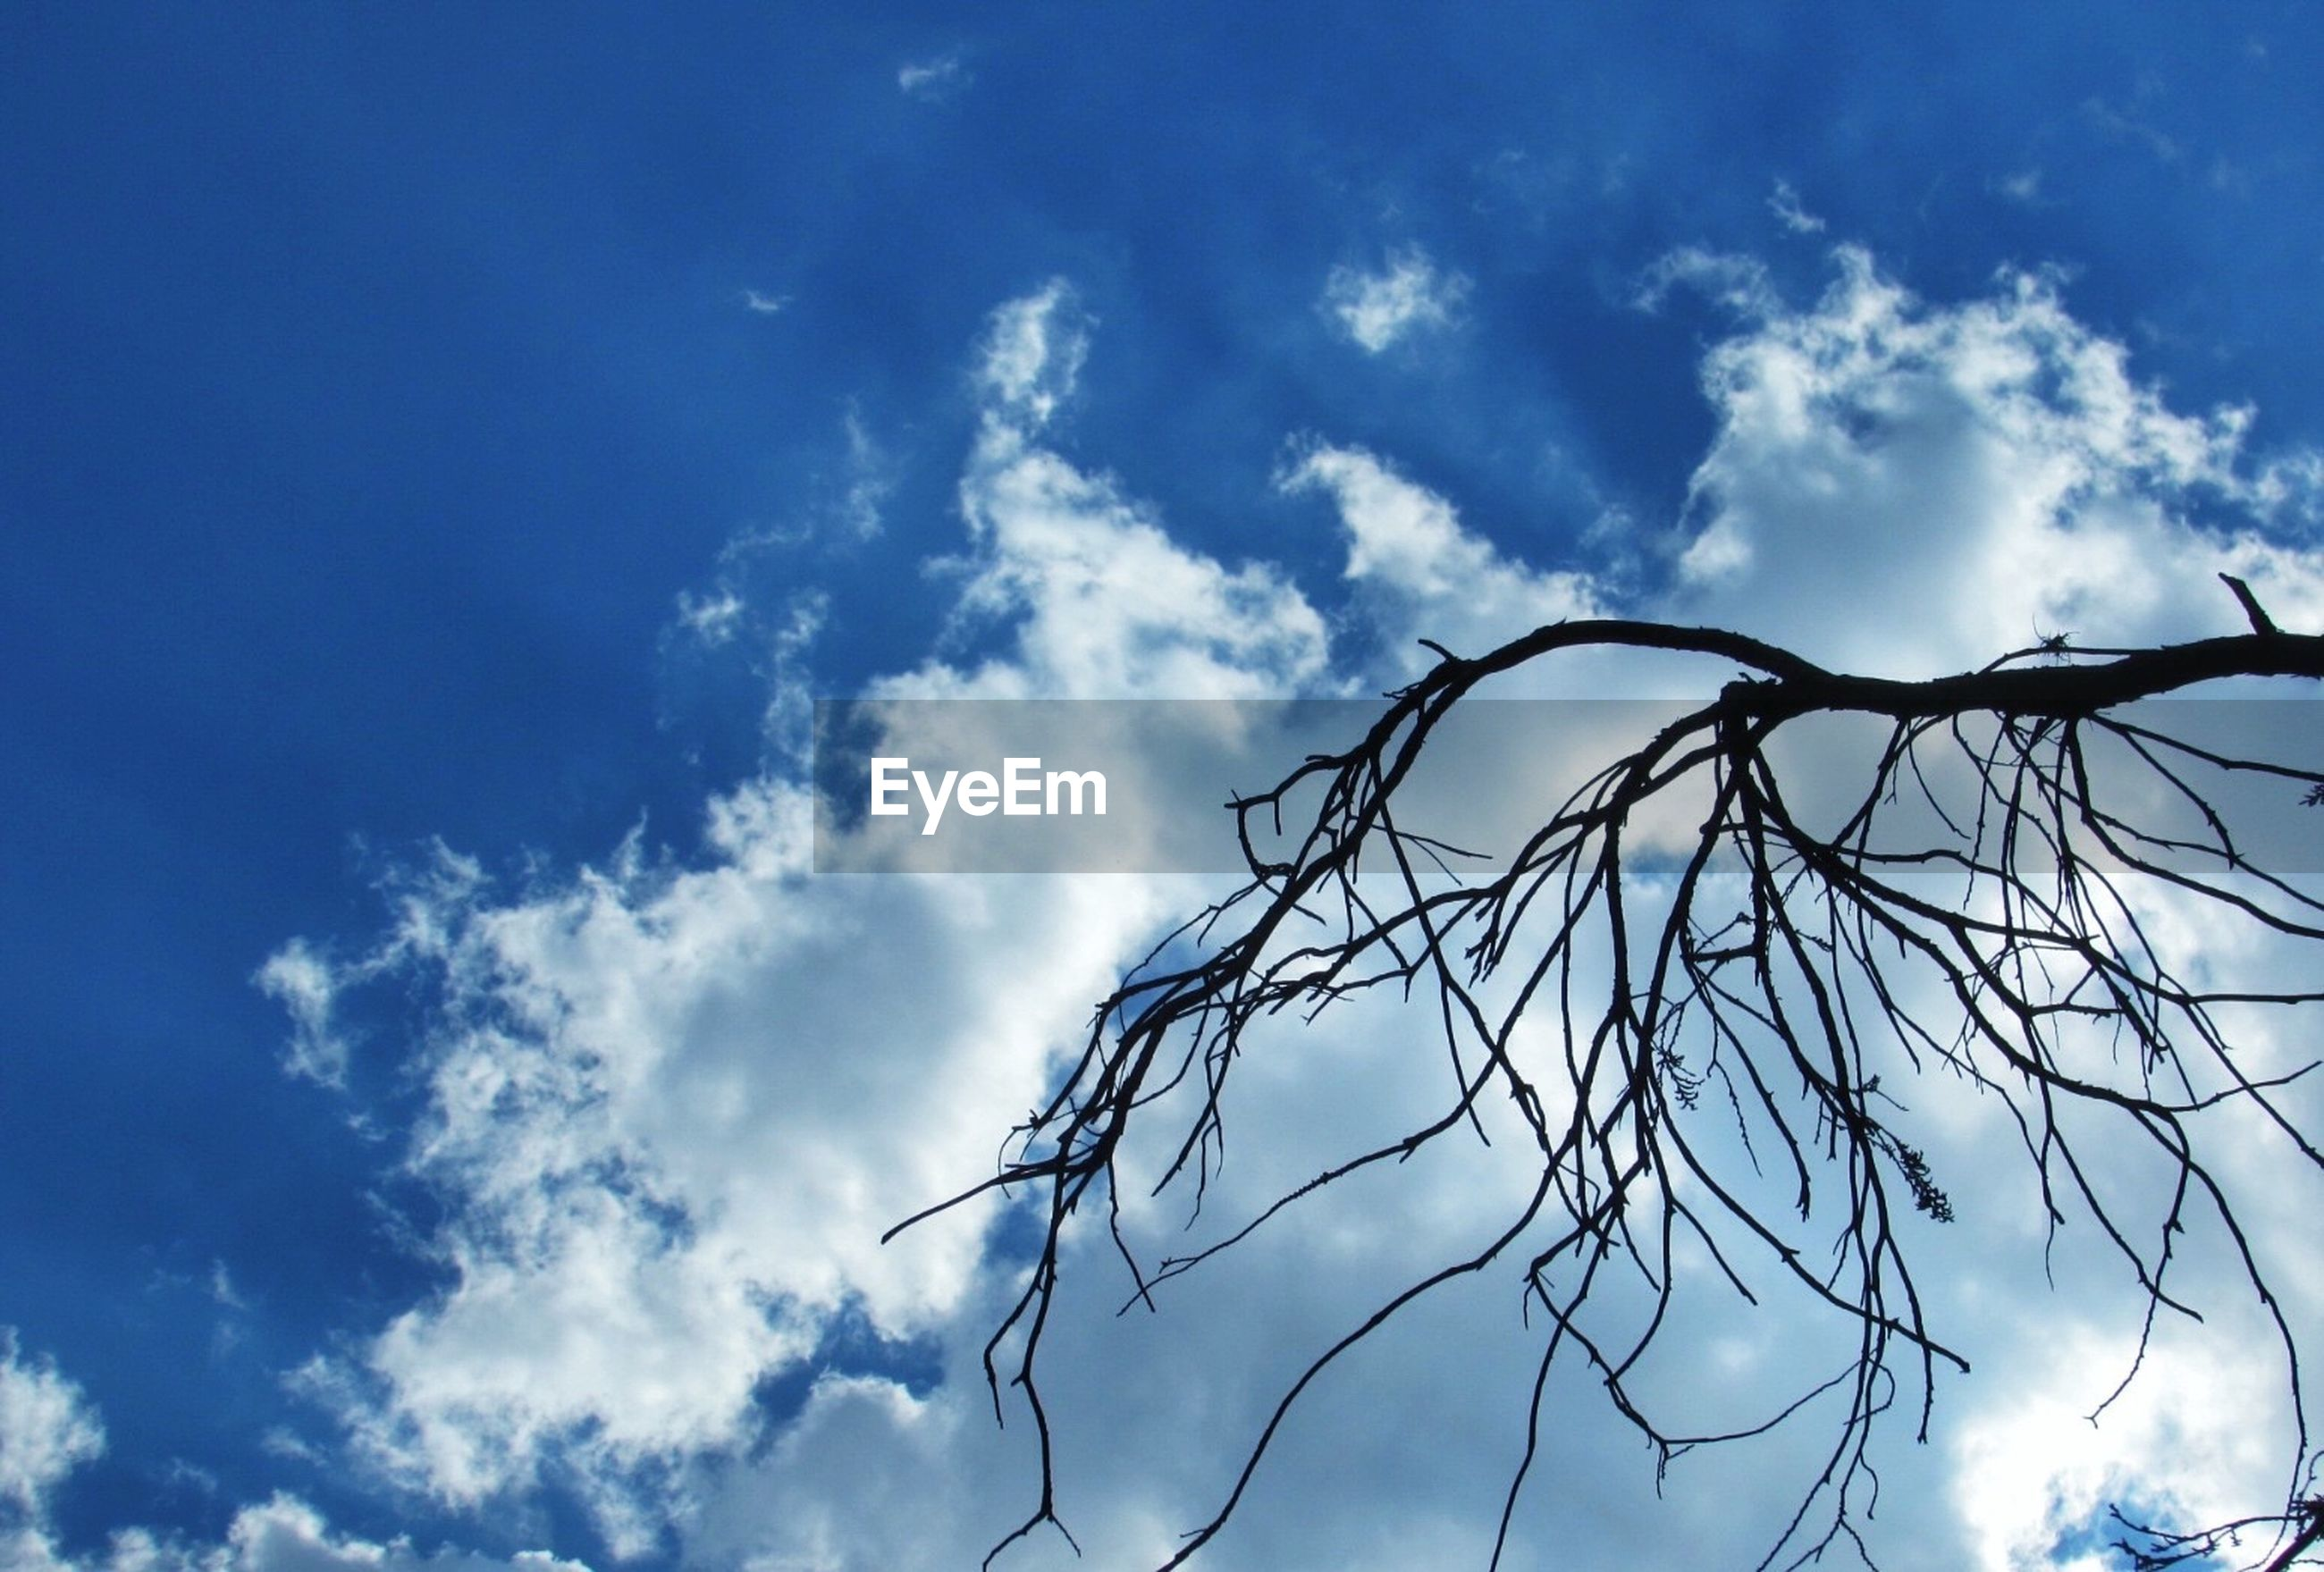 Low angle view of silhouette branch against cloudy sky